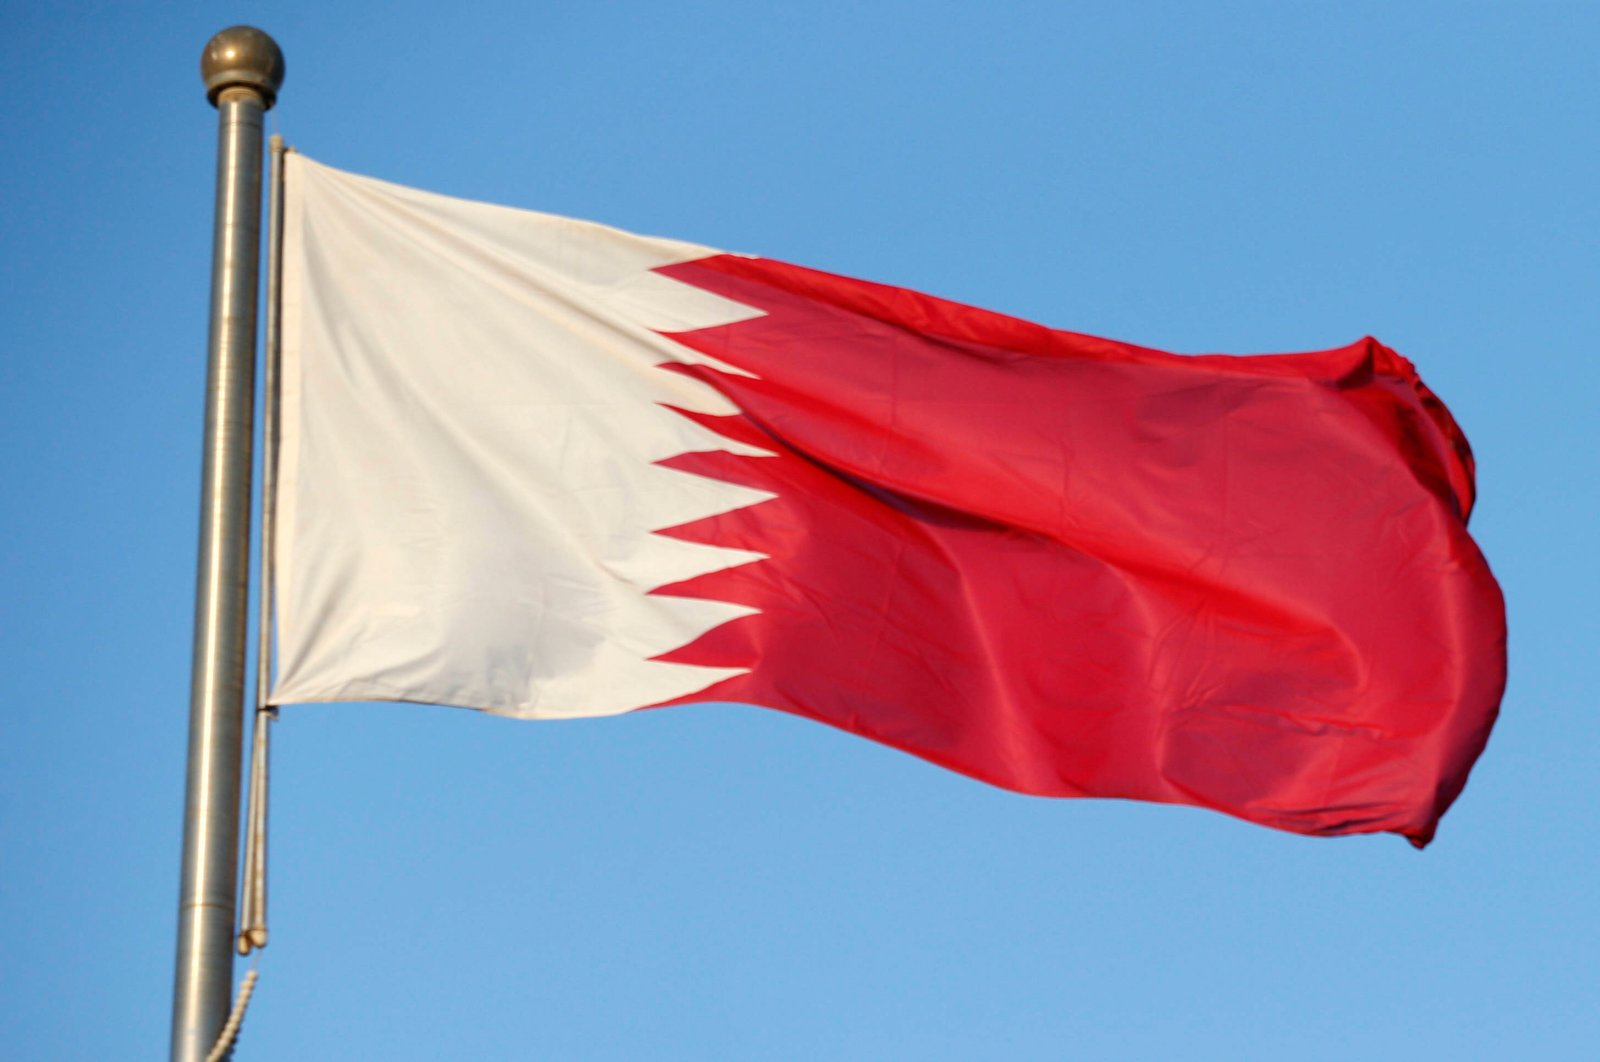 This file photo shows the Qatari national flag hoisted in Berlin, Germany on Feb. 27, 2020. (Reuters Photo)